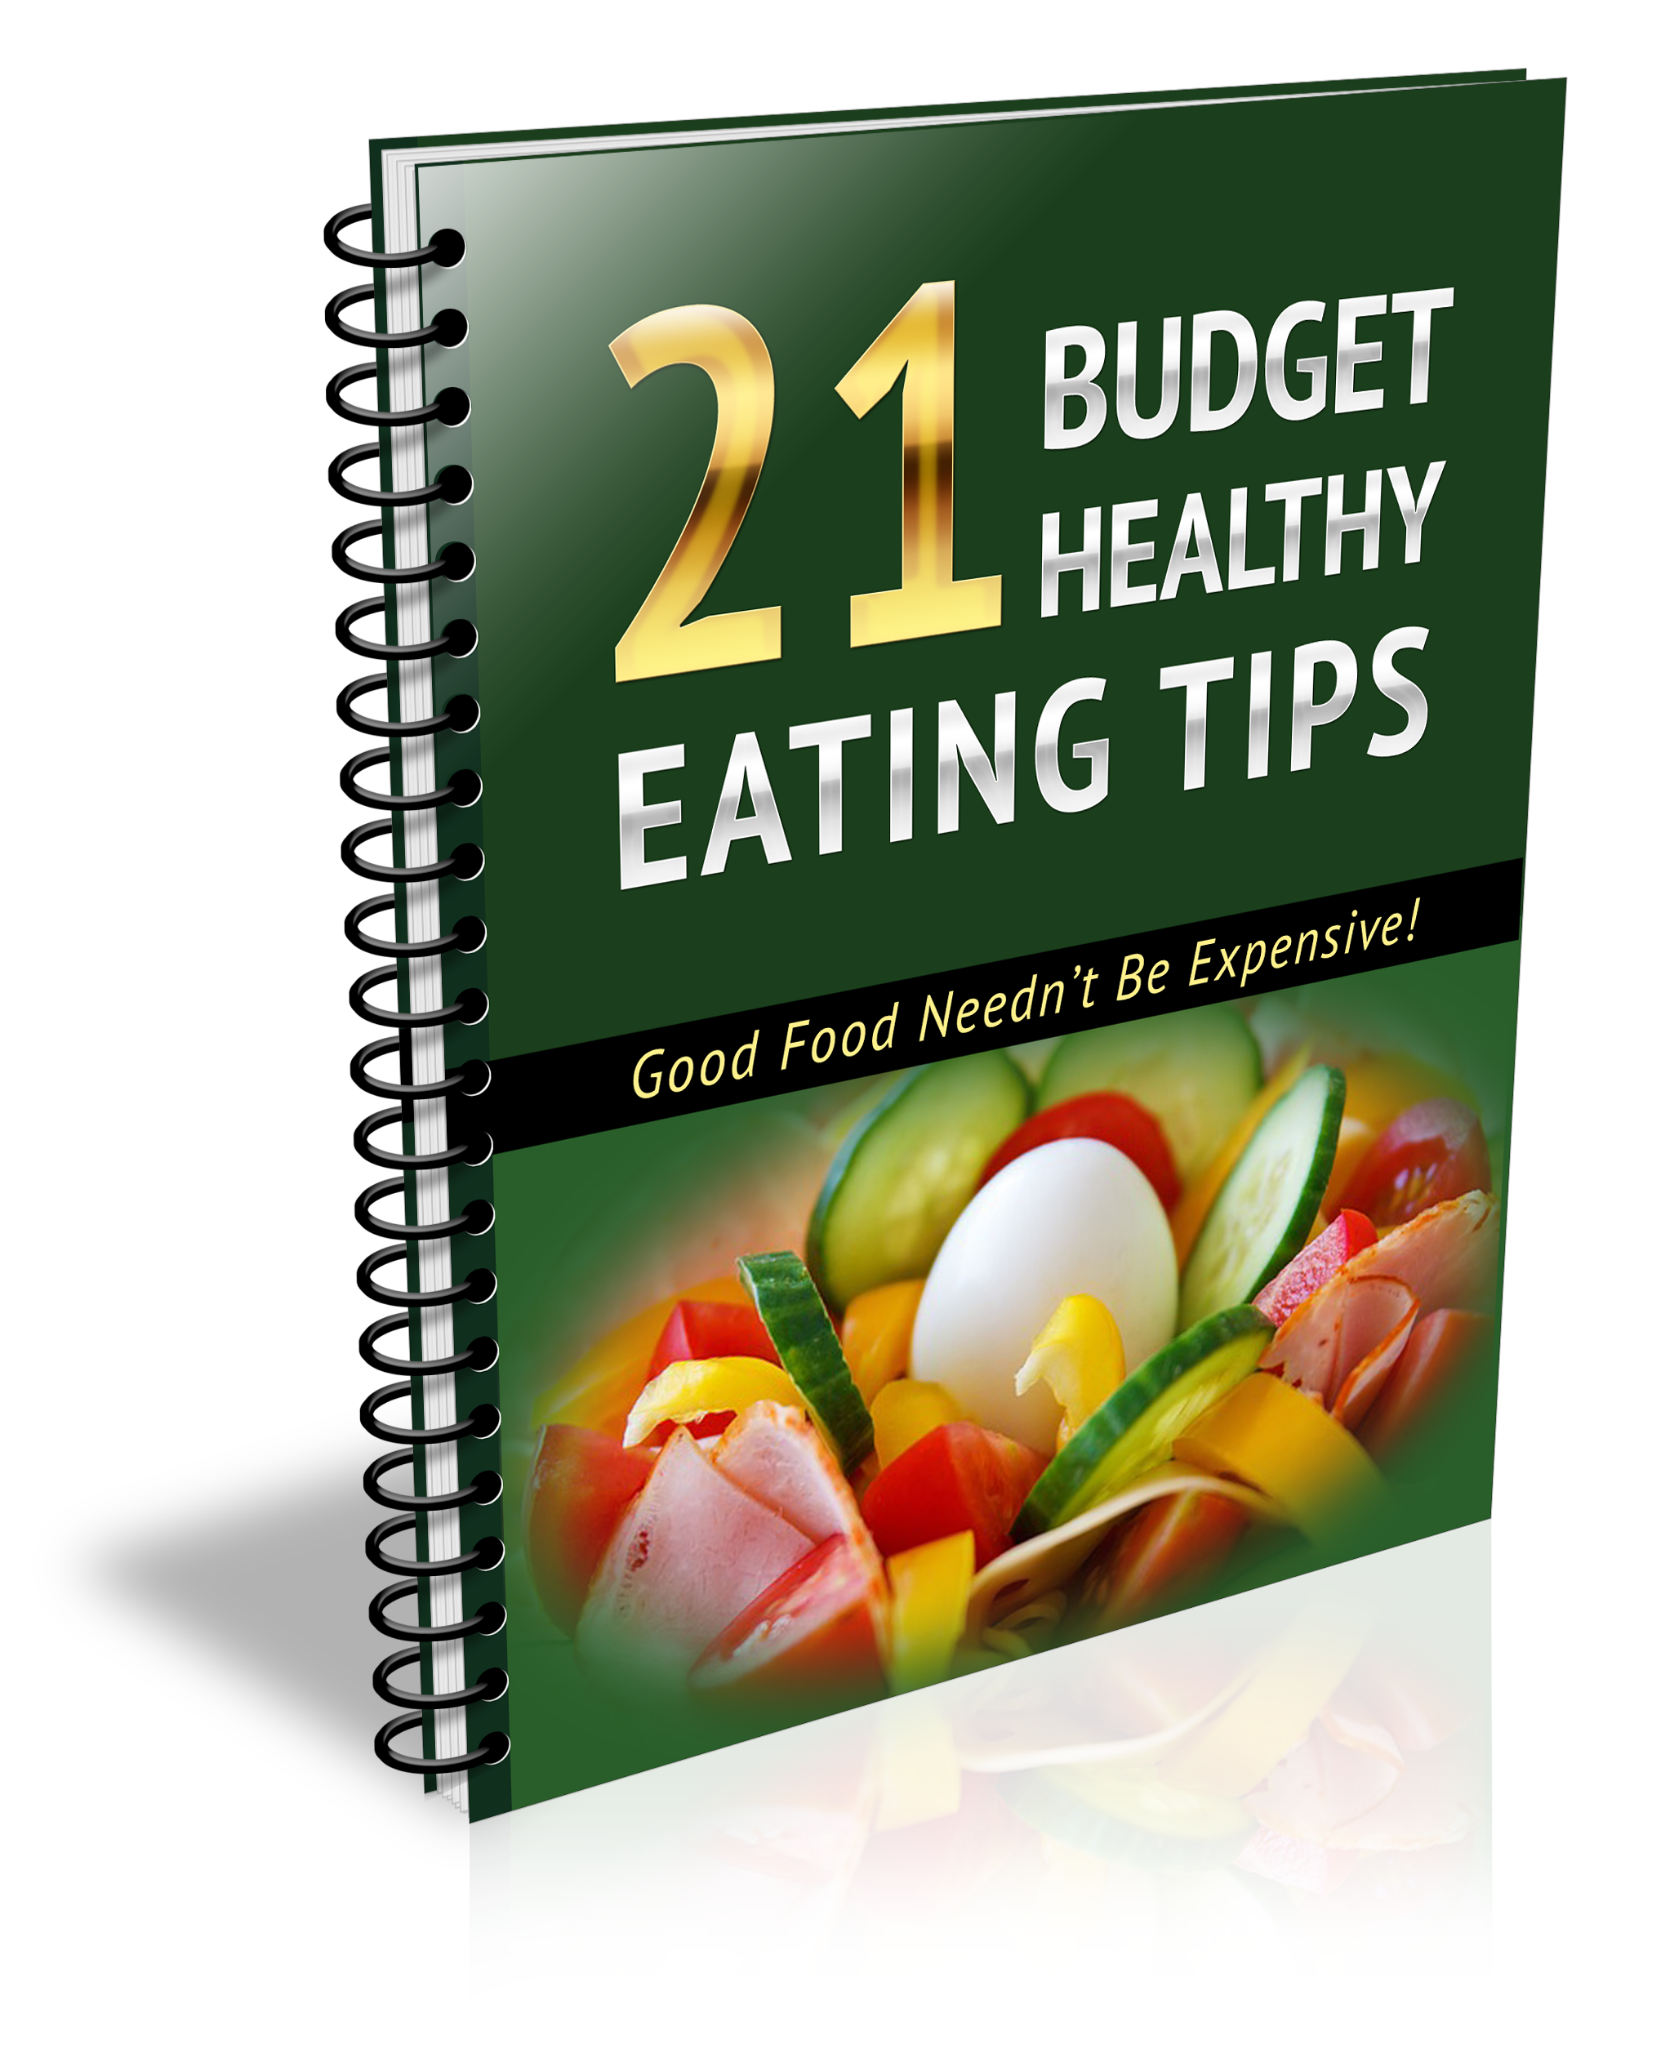 21 Budget Healthy Eating Tips